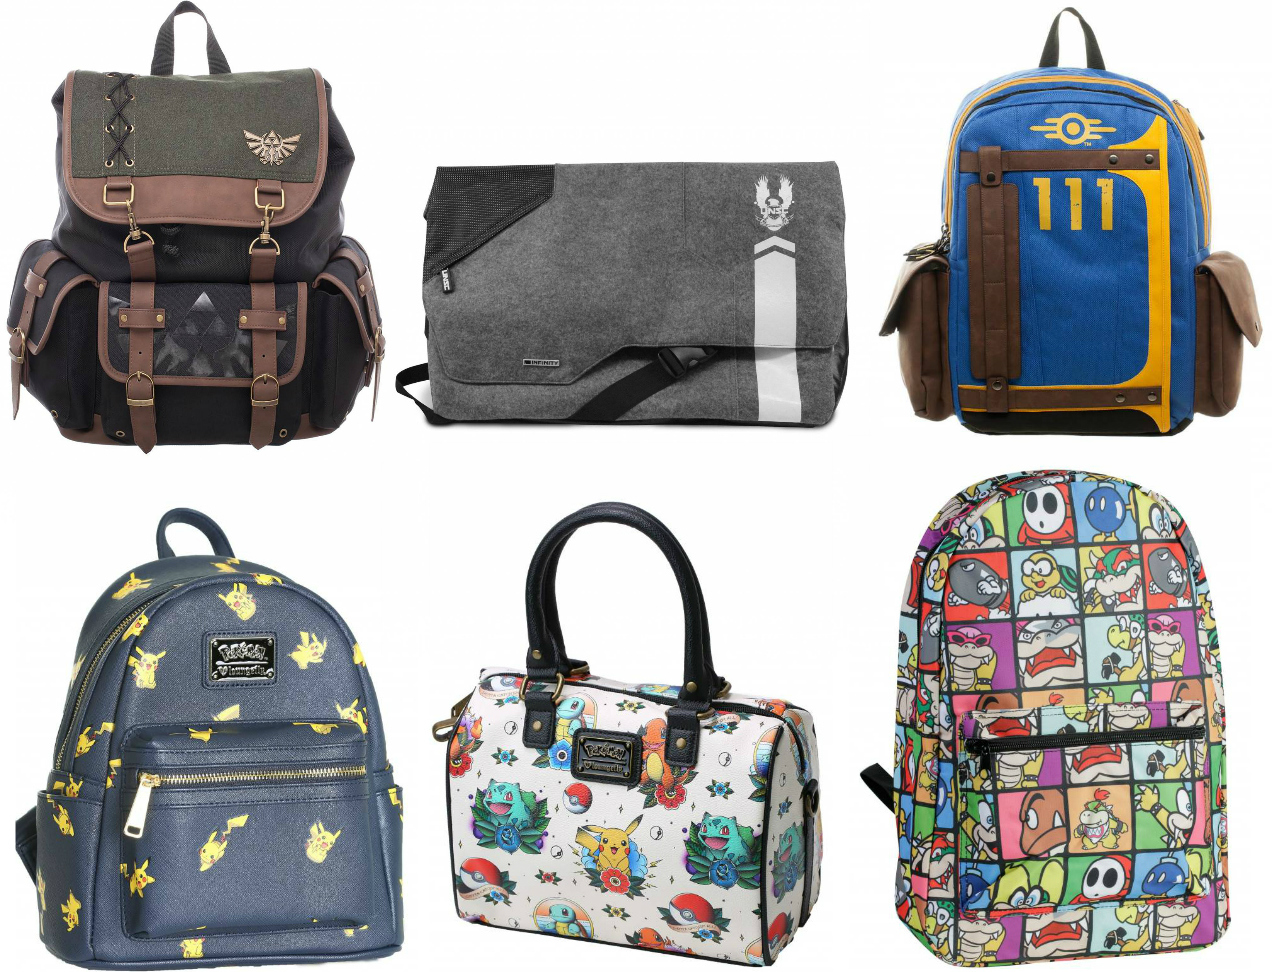 Video Game Merch Backpacks and Bags